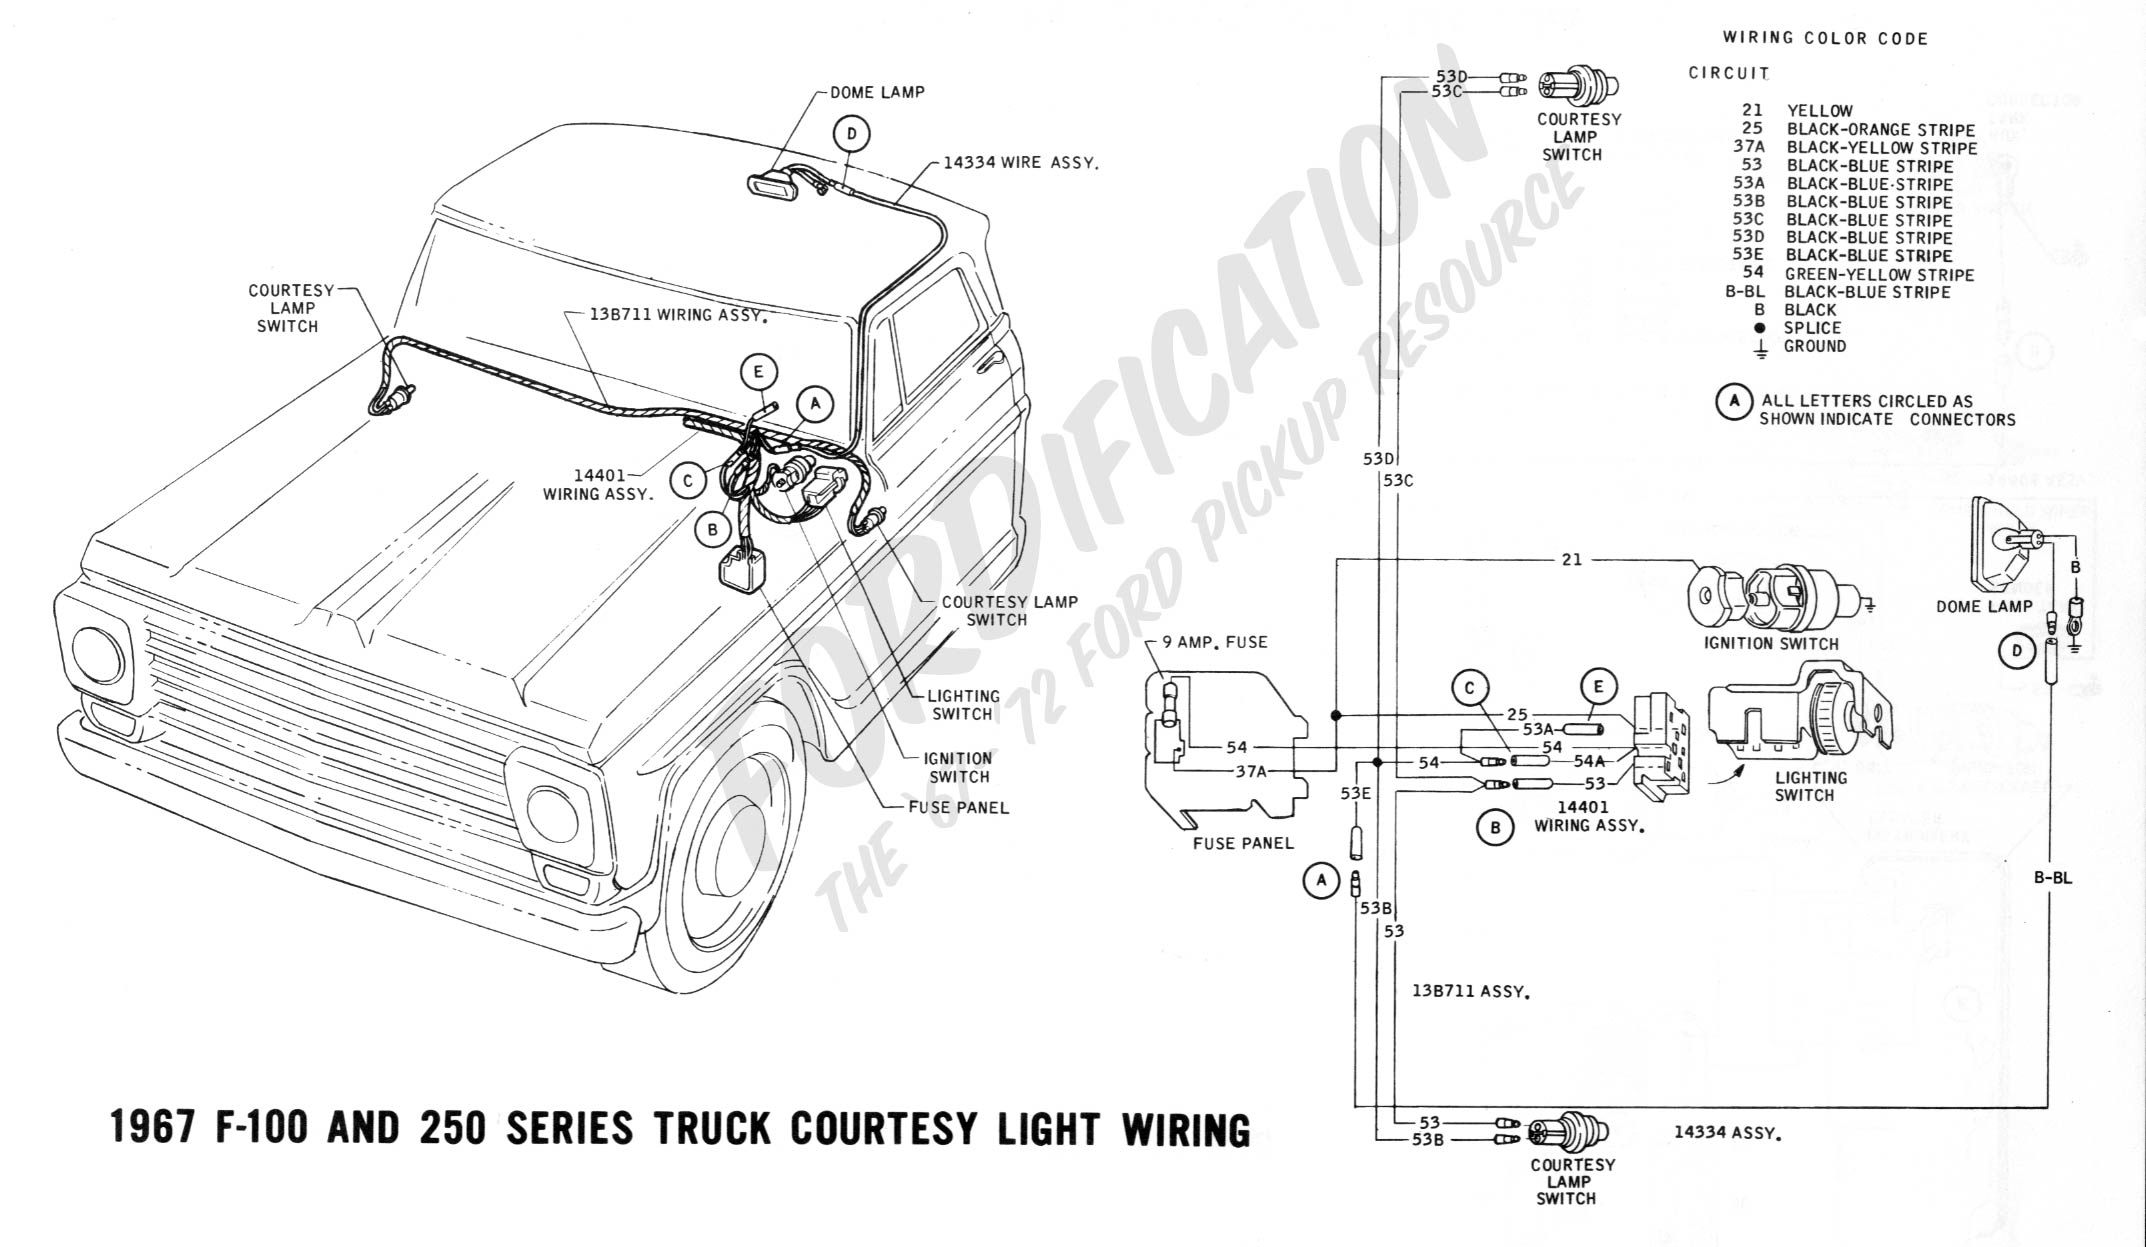 wiring 1967courtesylight ford truck technical drawings and schematics section h wiring 1969 ford f100 steering column wiring diagram at gsmportal.co